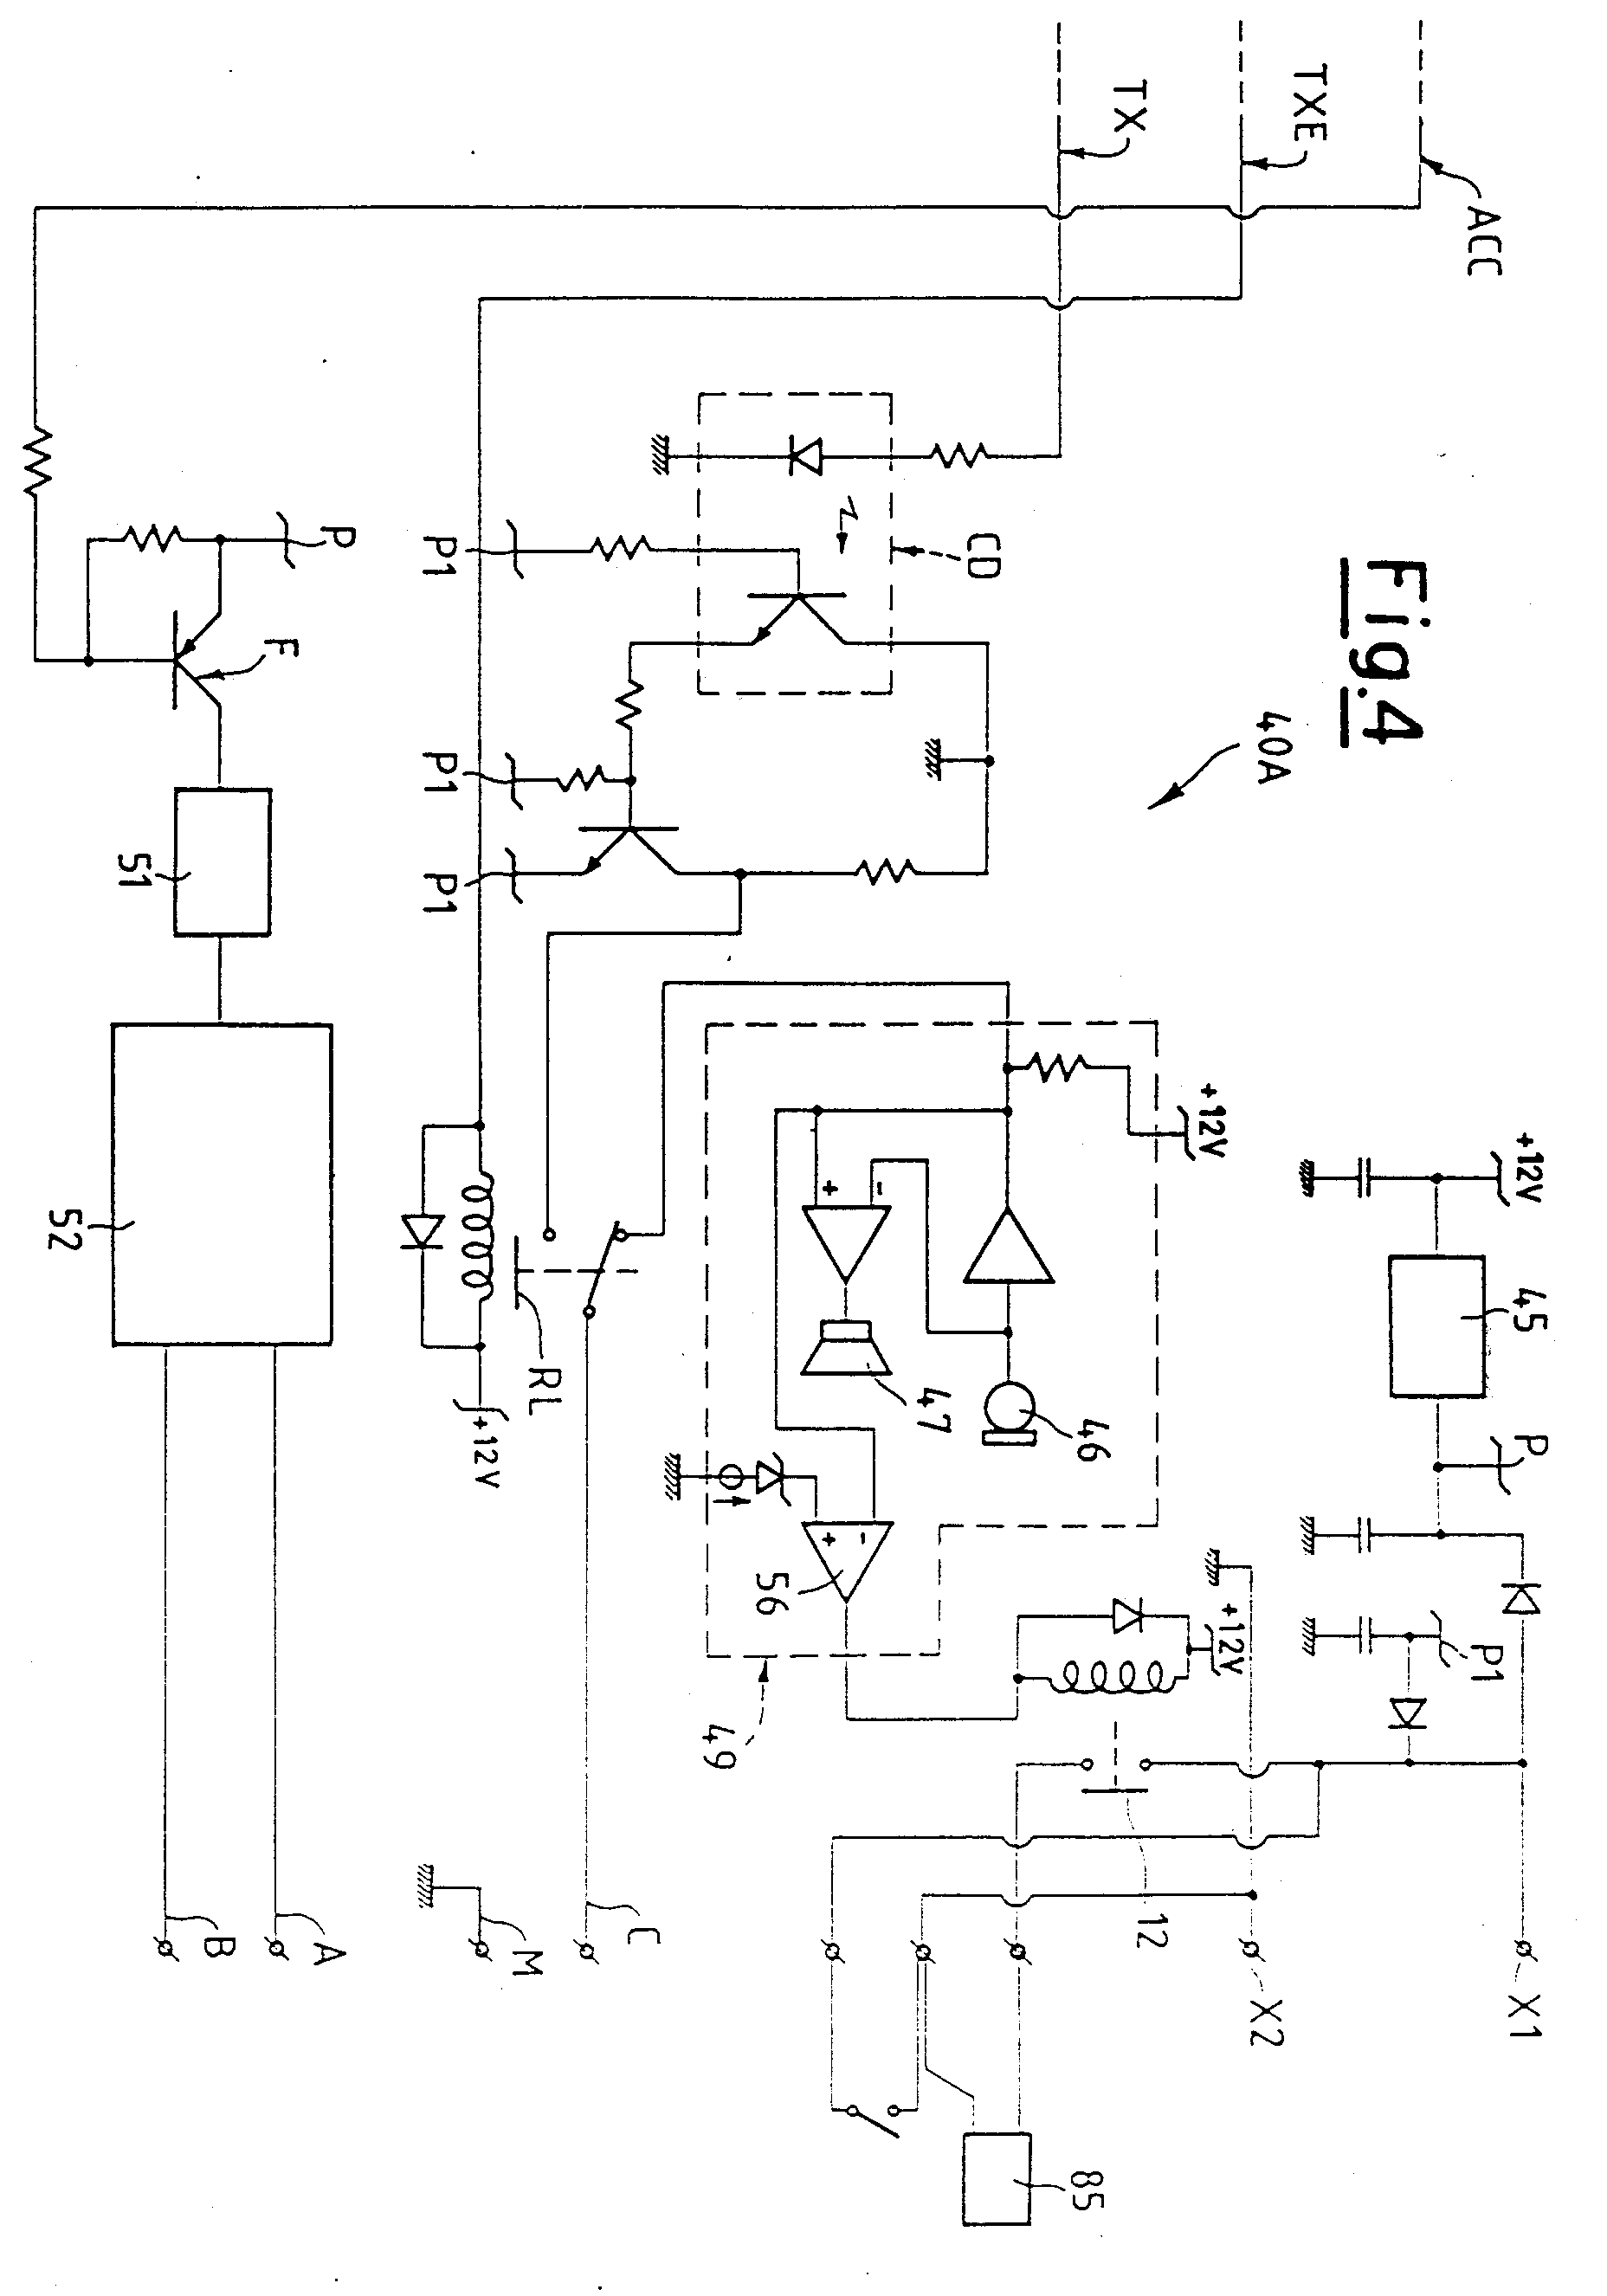 00130001 patent ep0876044a2 electric connection system for intercom and bitron video intercom wiring diagram at gsmx.co